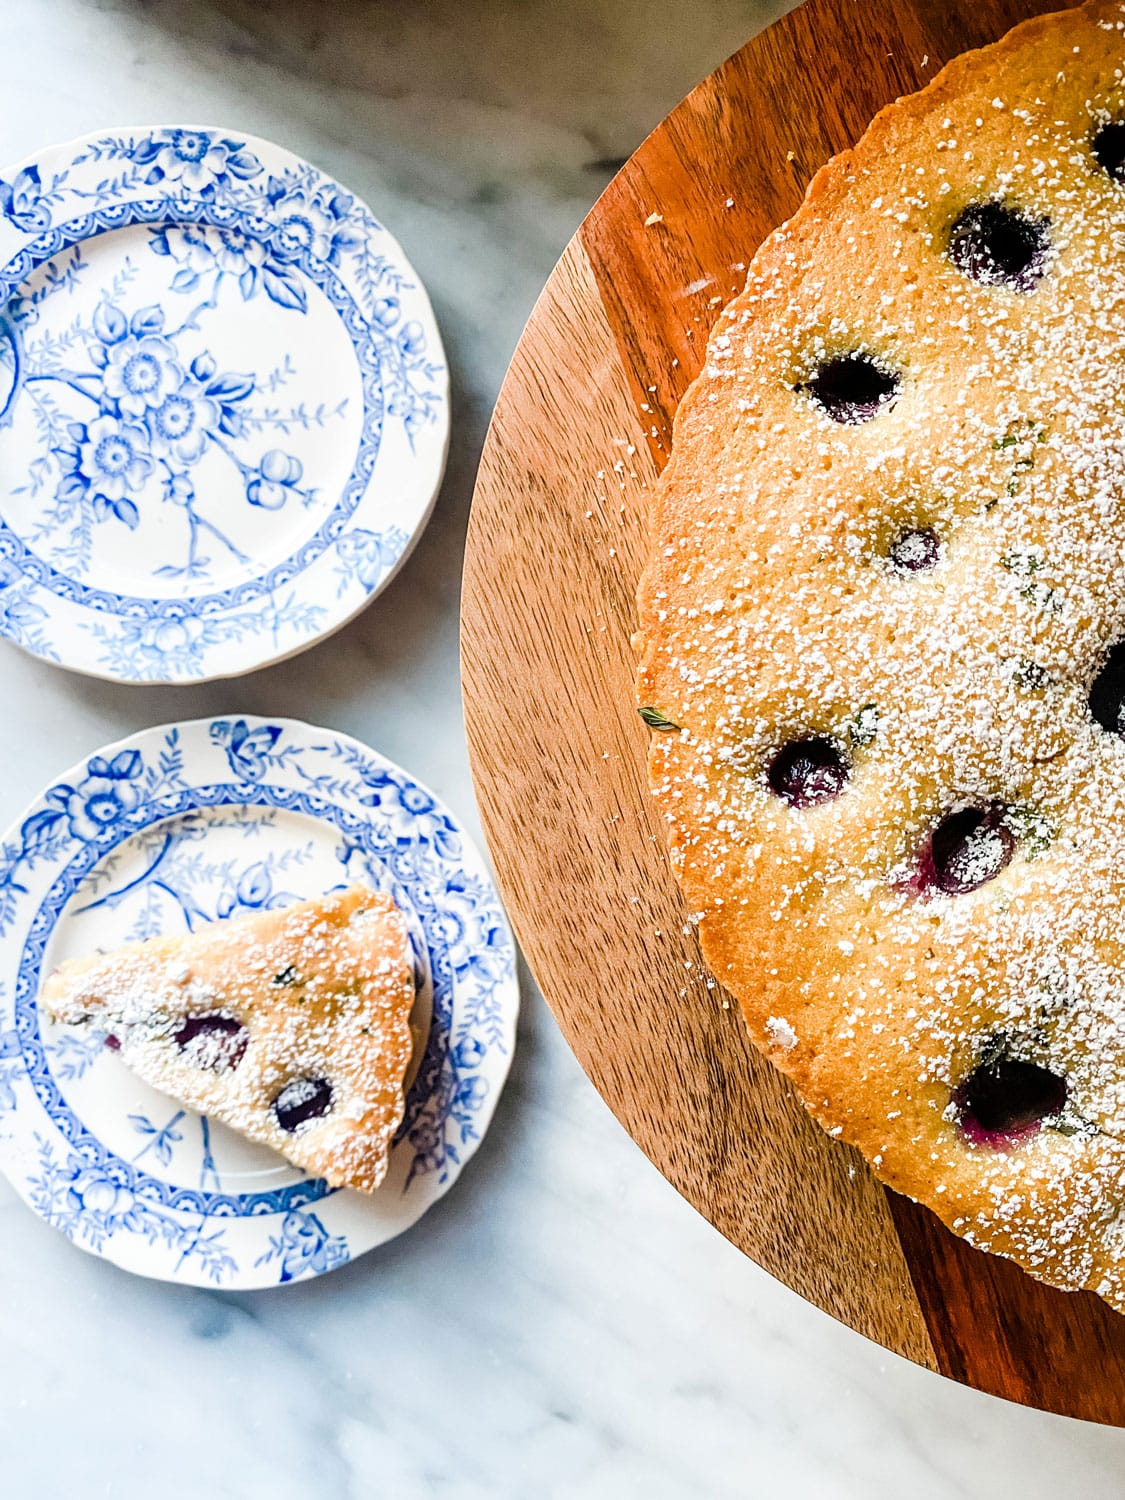 This Thomcord Grape Harvest Cake is slightly sweet, but earthy from the olive oil and fresh thyme too! Perfect for after dinner, lunch or serve for breakfast. It can be made ahead!